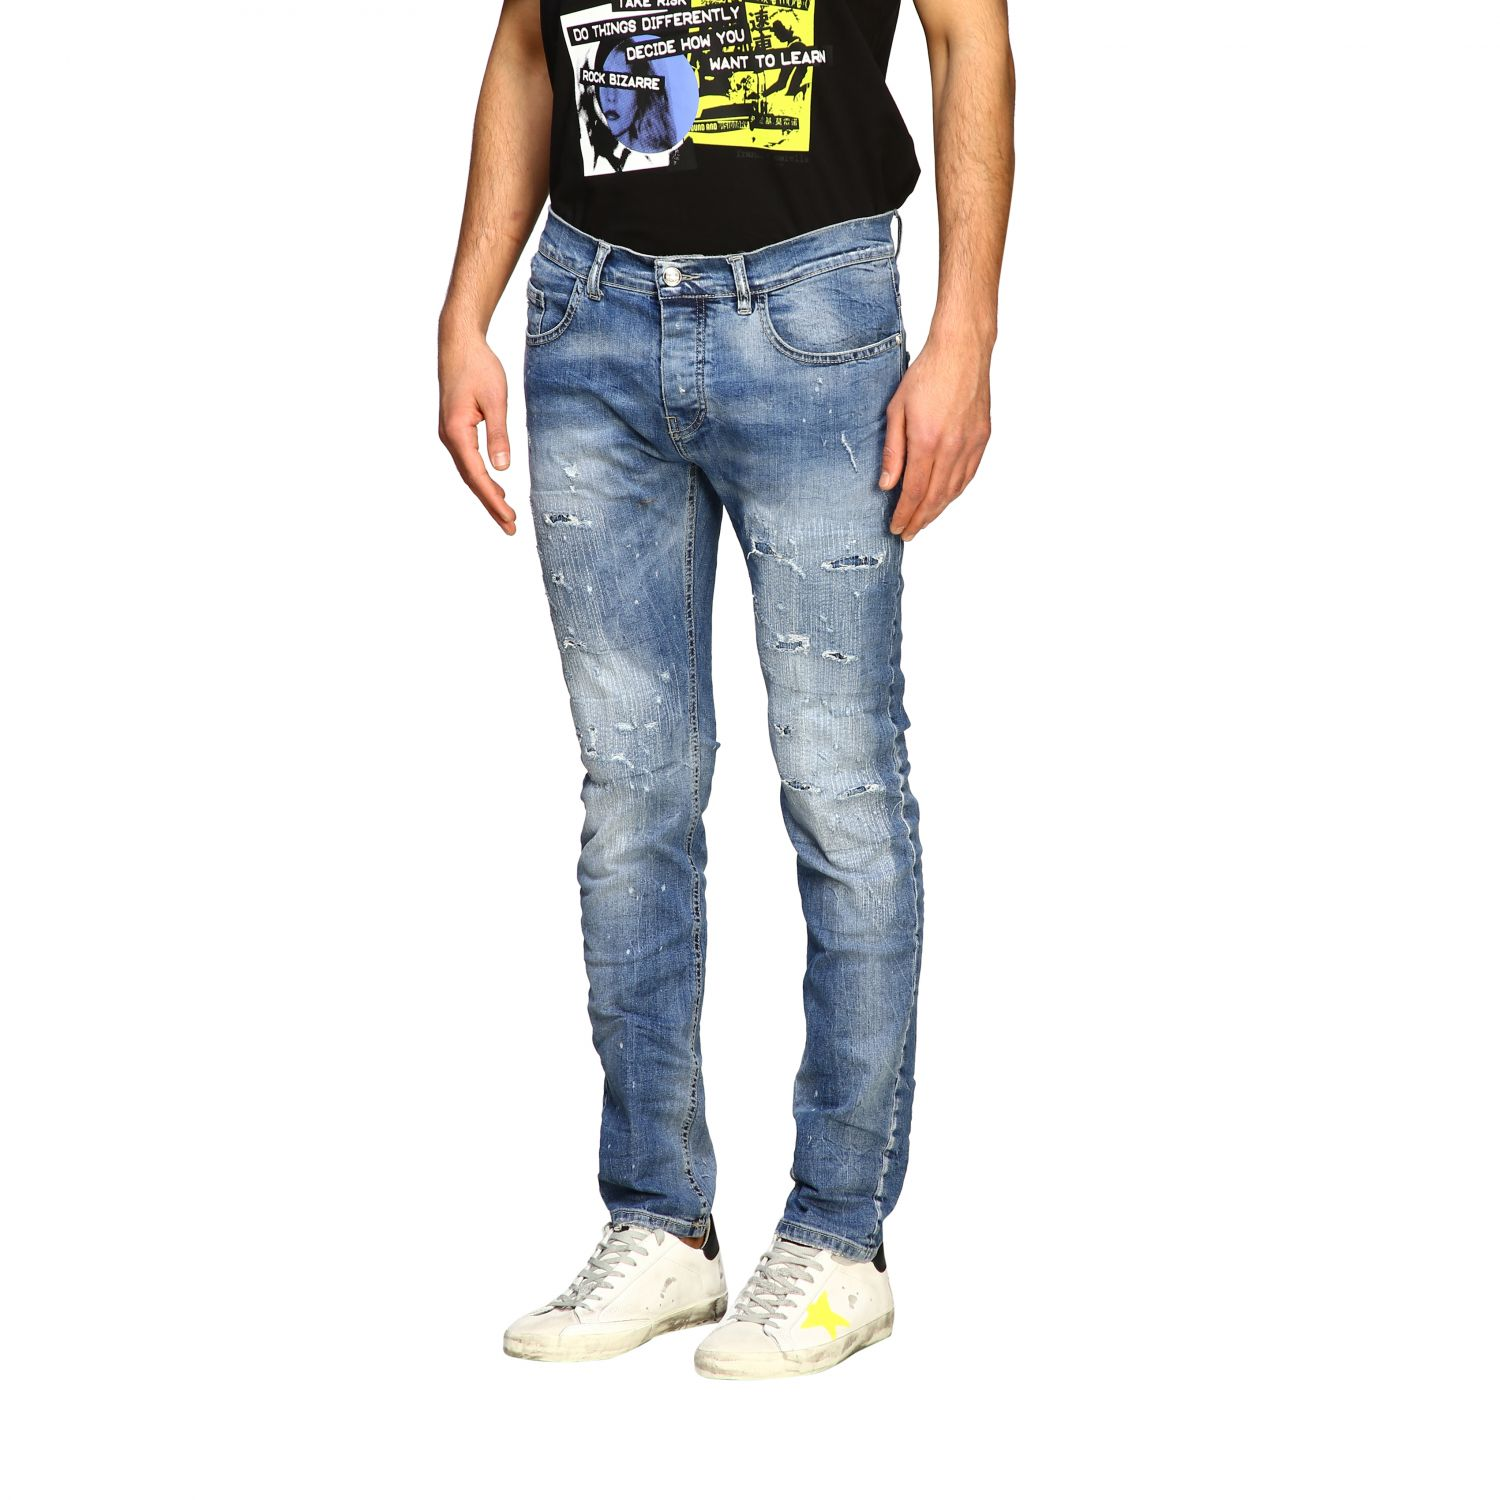 Jeans men Frankie Morello stone washed 4